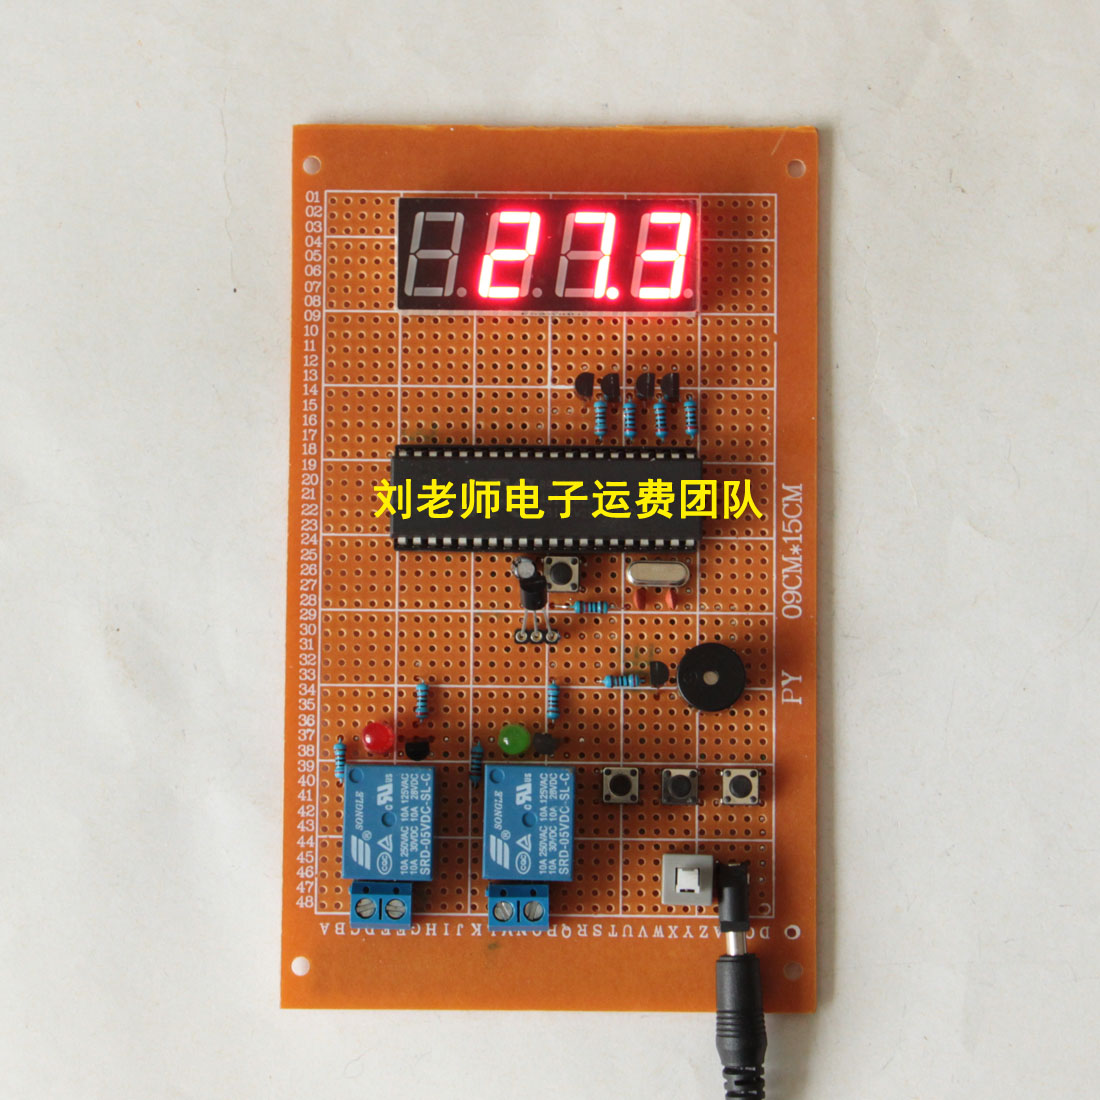 Design of Temperature Control Alarm Device Based on 51 Single Chip Microcomputer